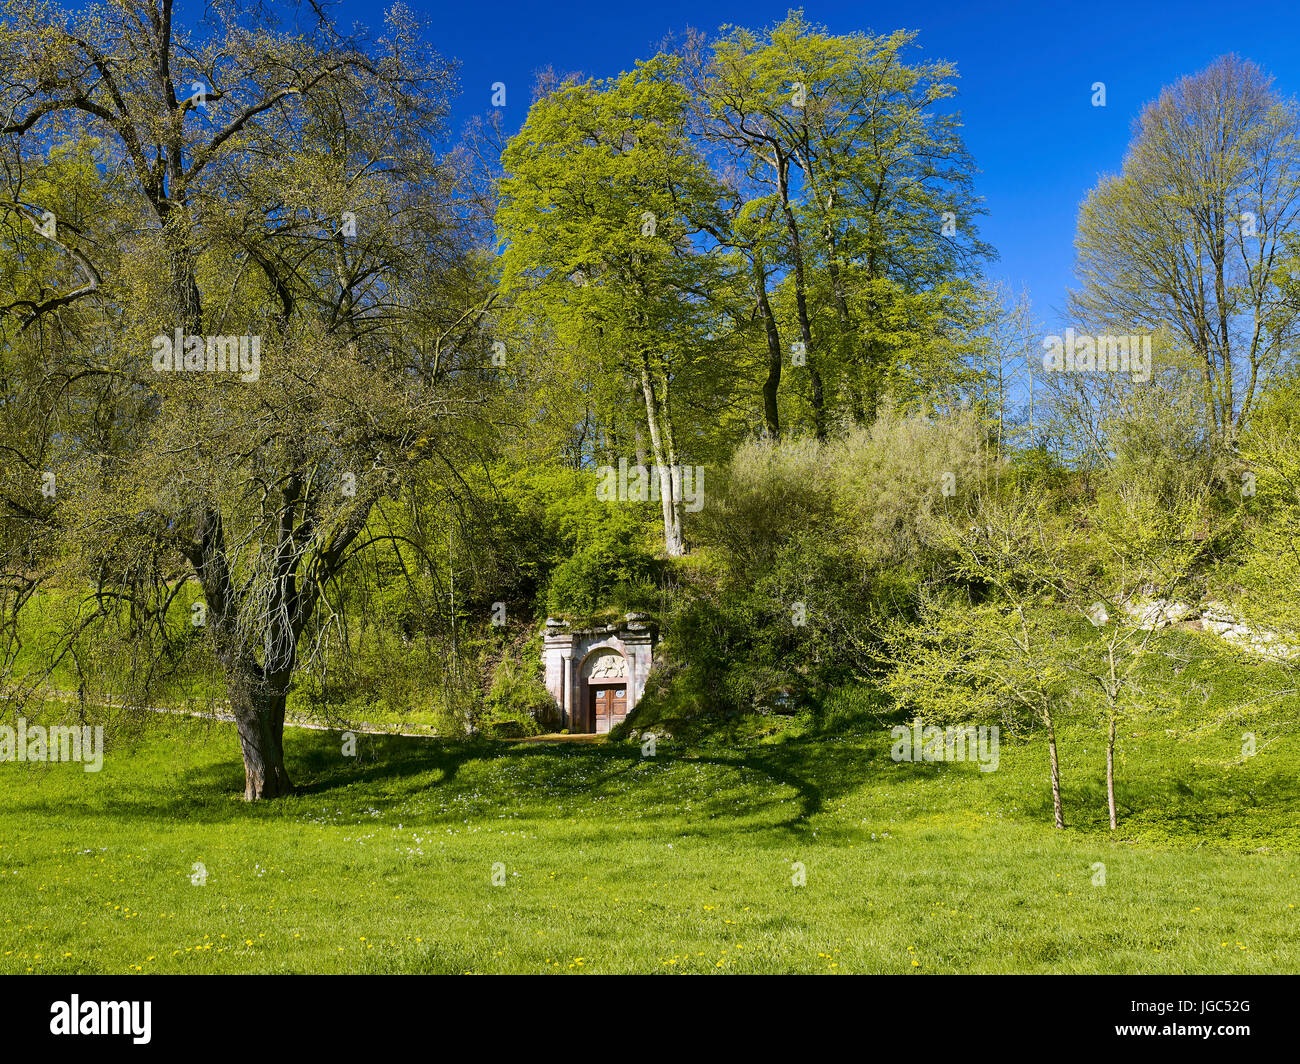 Lion fighters Portal in the Park on the Ilm, Weimar, Thuringia, Germany - Stock Image